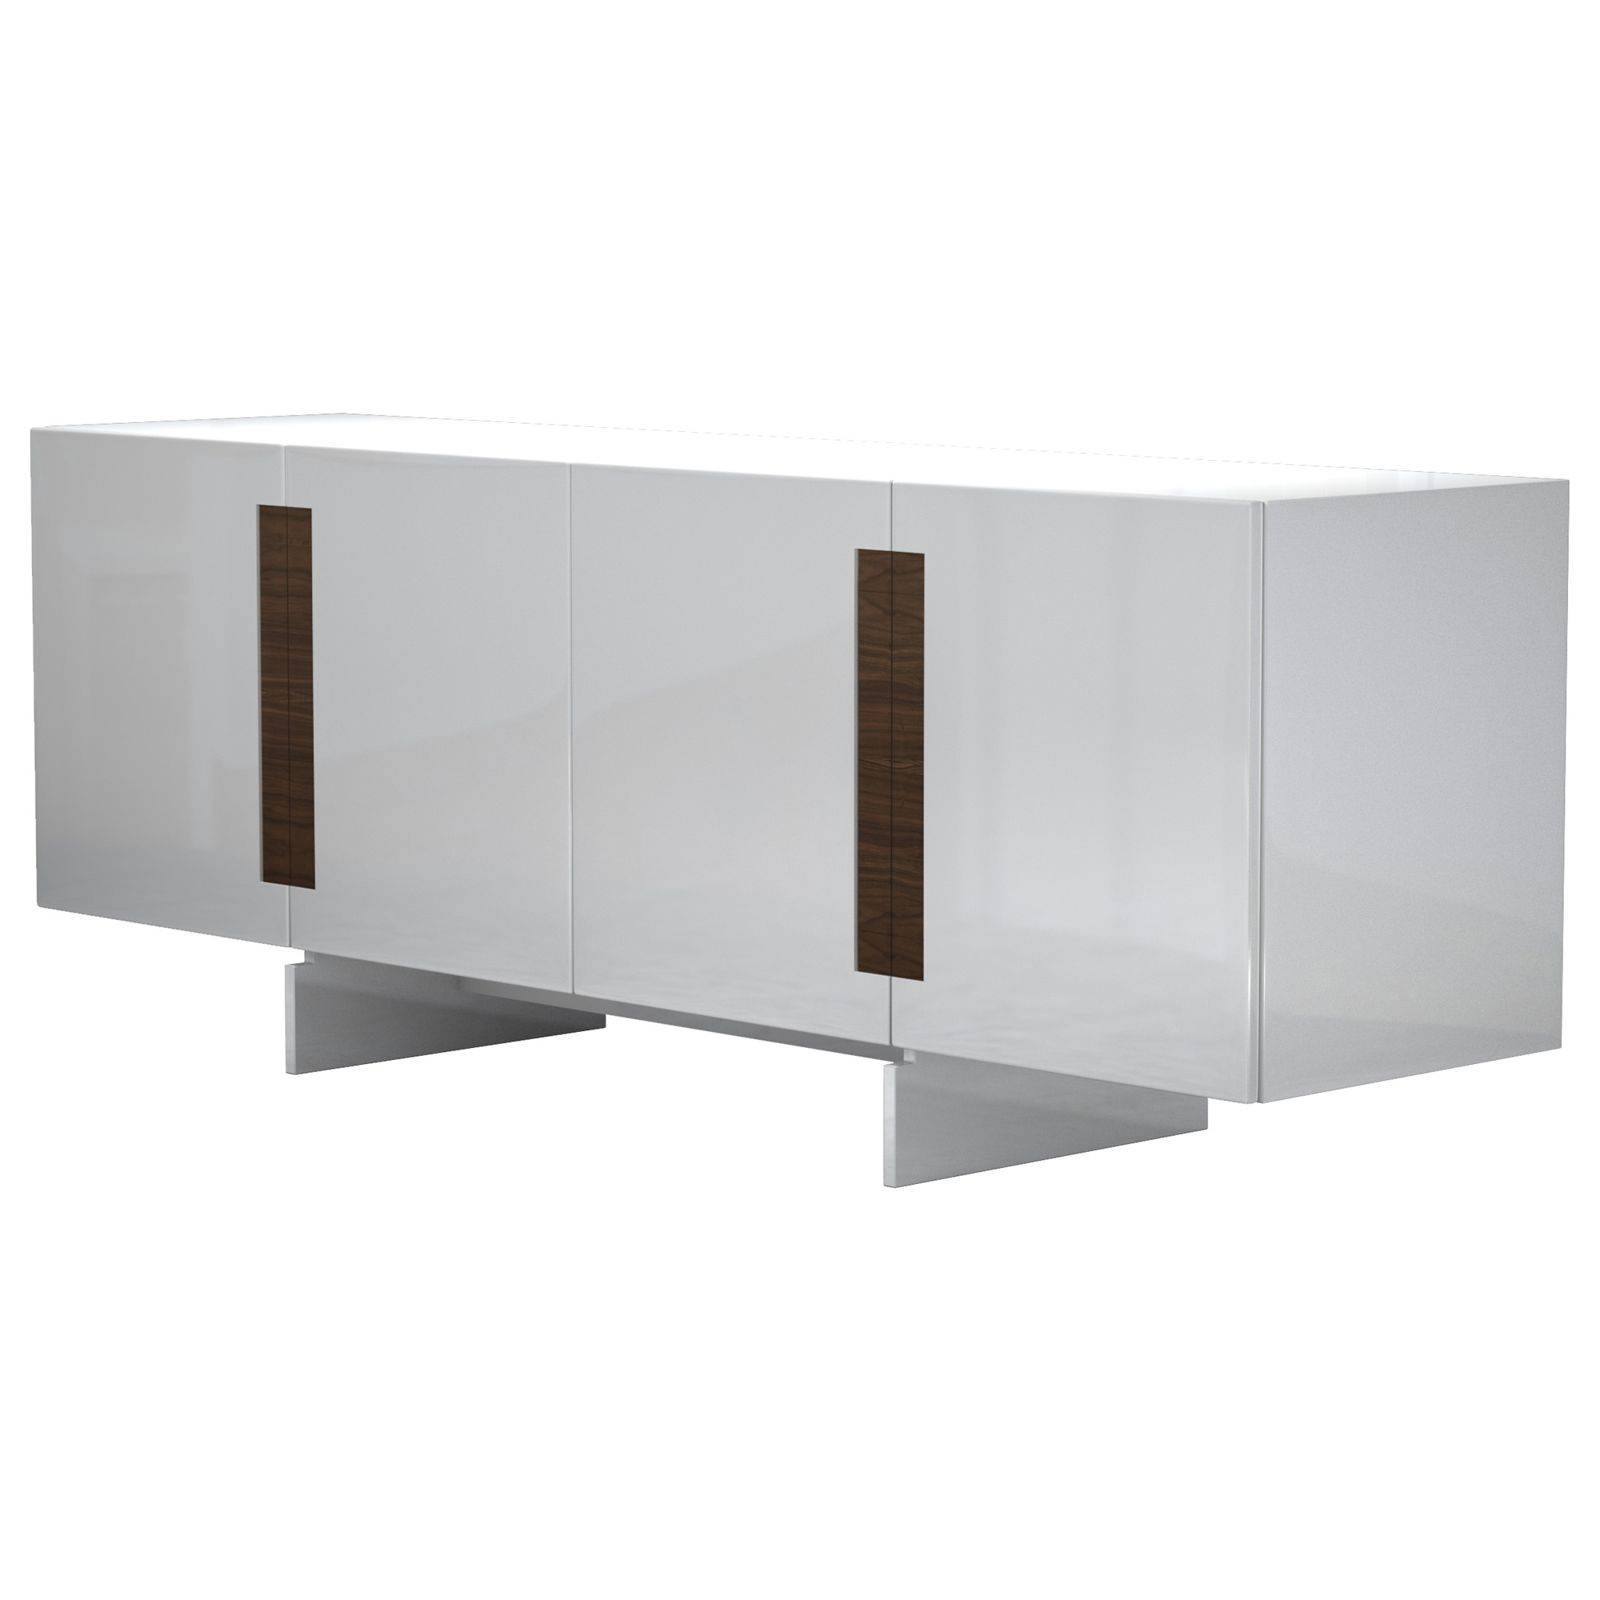 Brixton Sideboardmodloft | Modern Sideboards | Cressina Regarding White Contemporary Sideboards (#3 of 15)